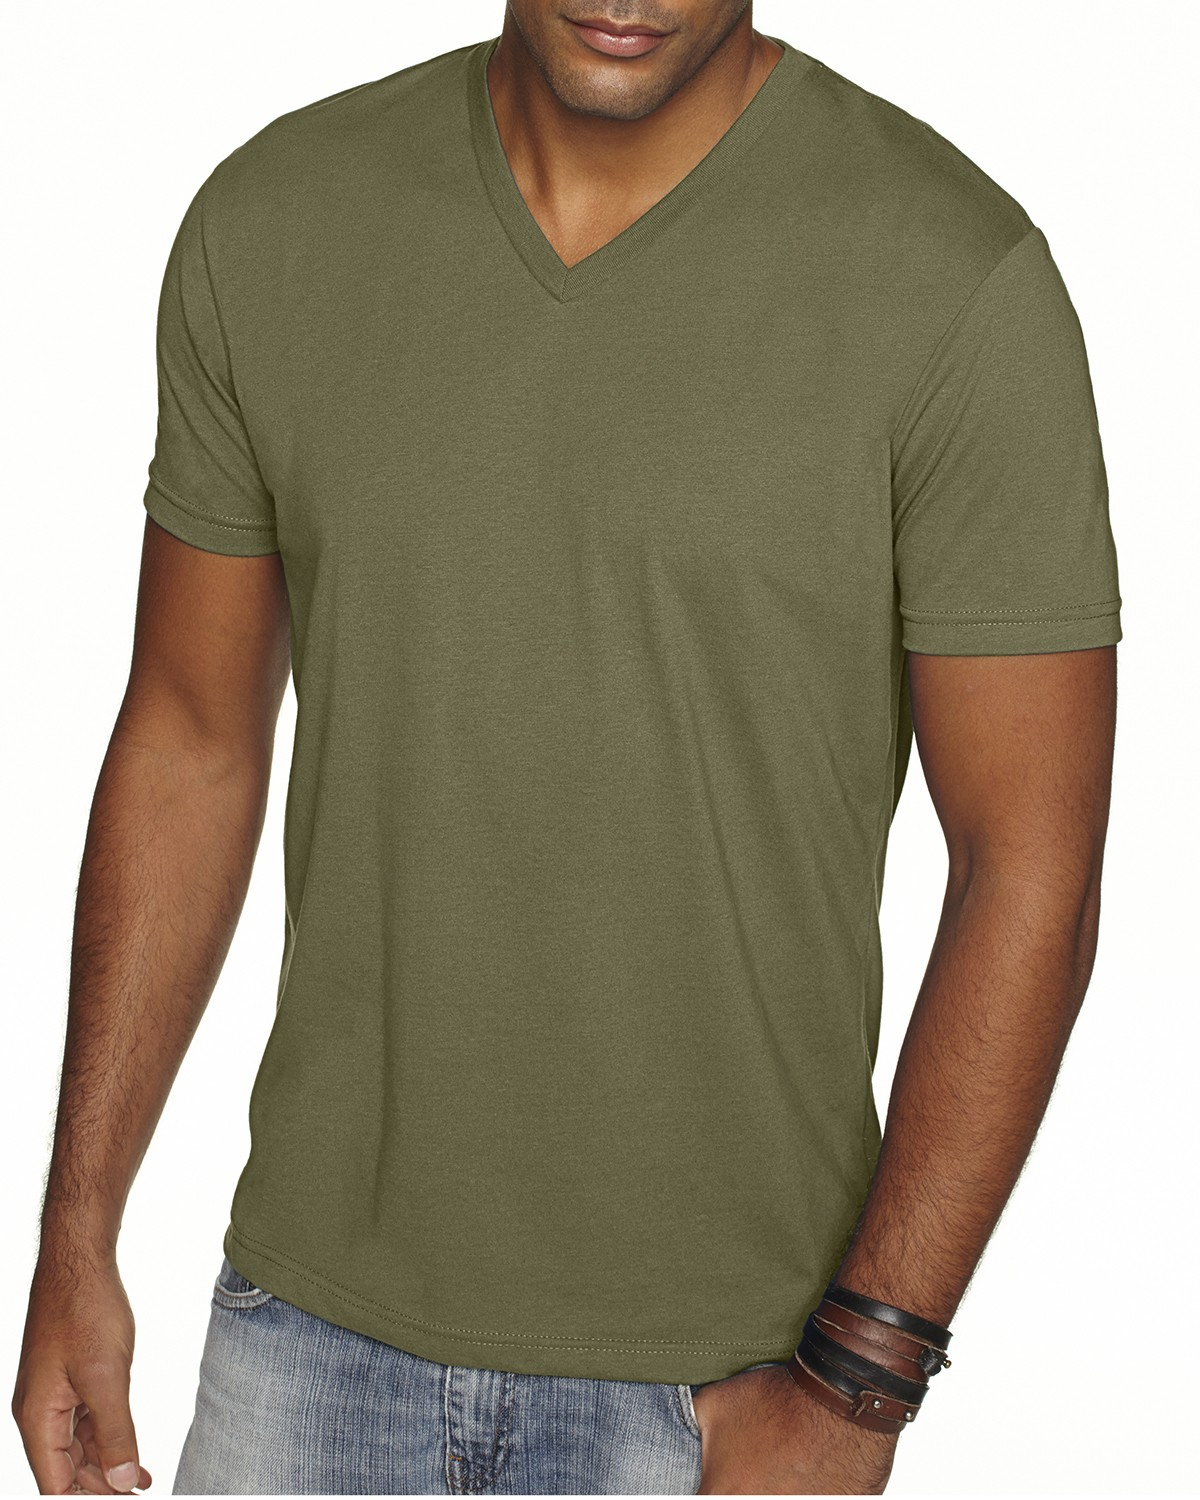 6440 Next Level MILITARY GREEN